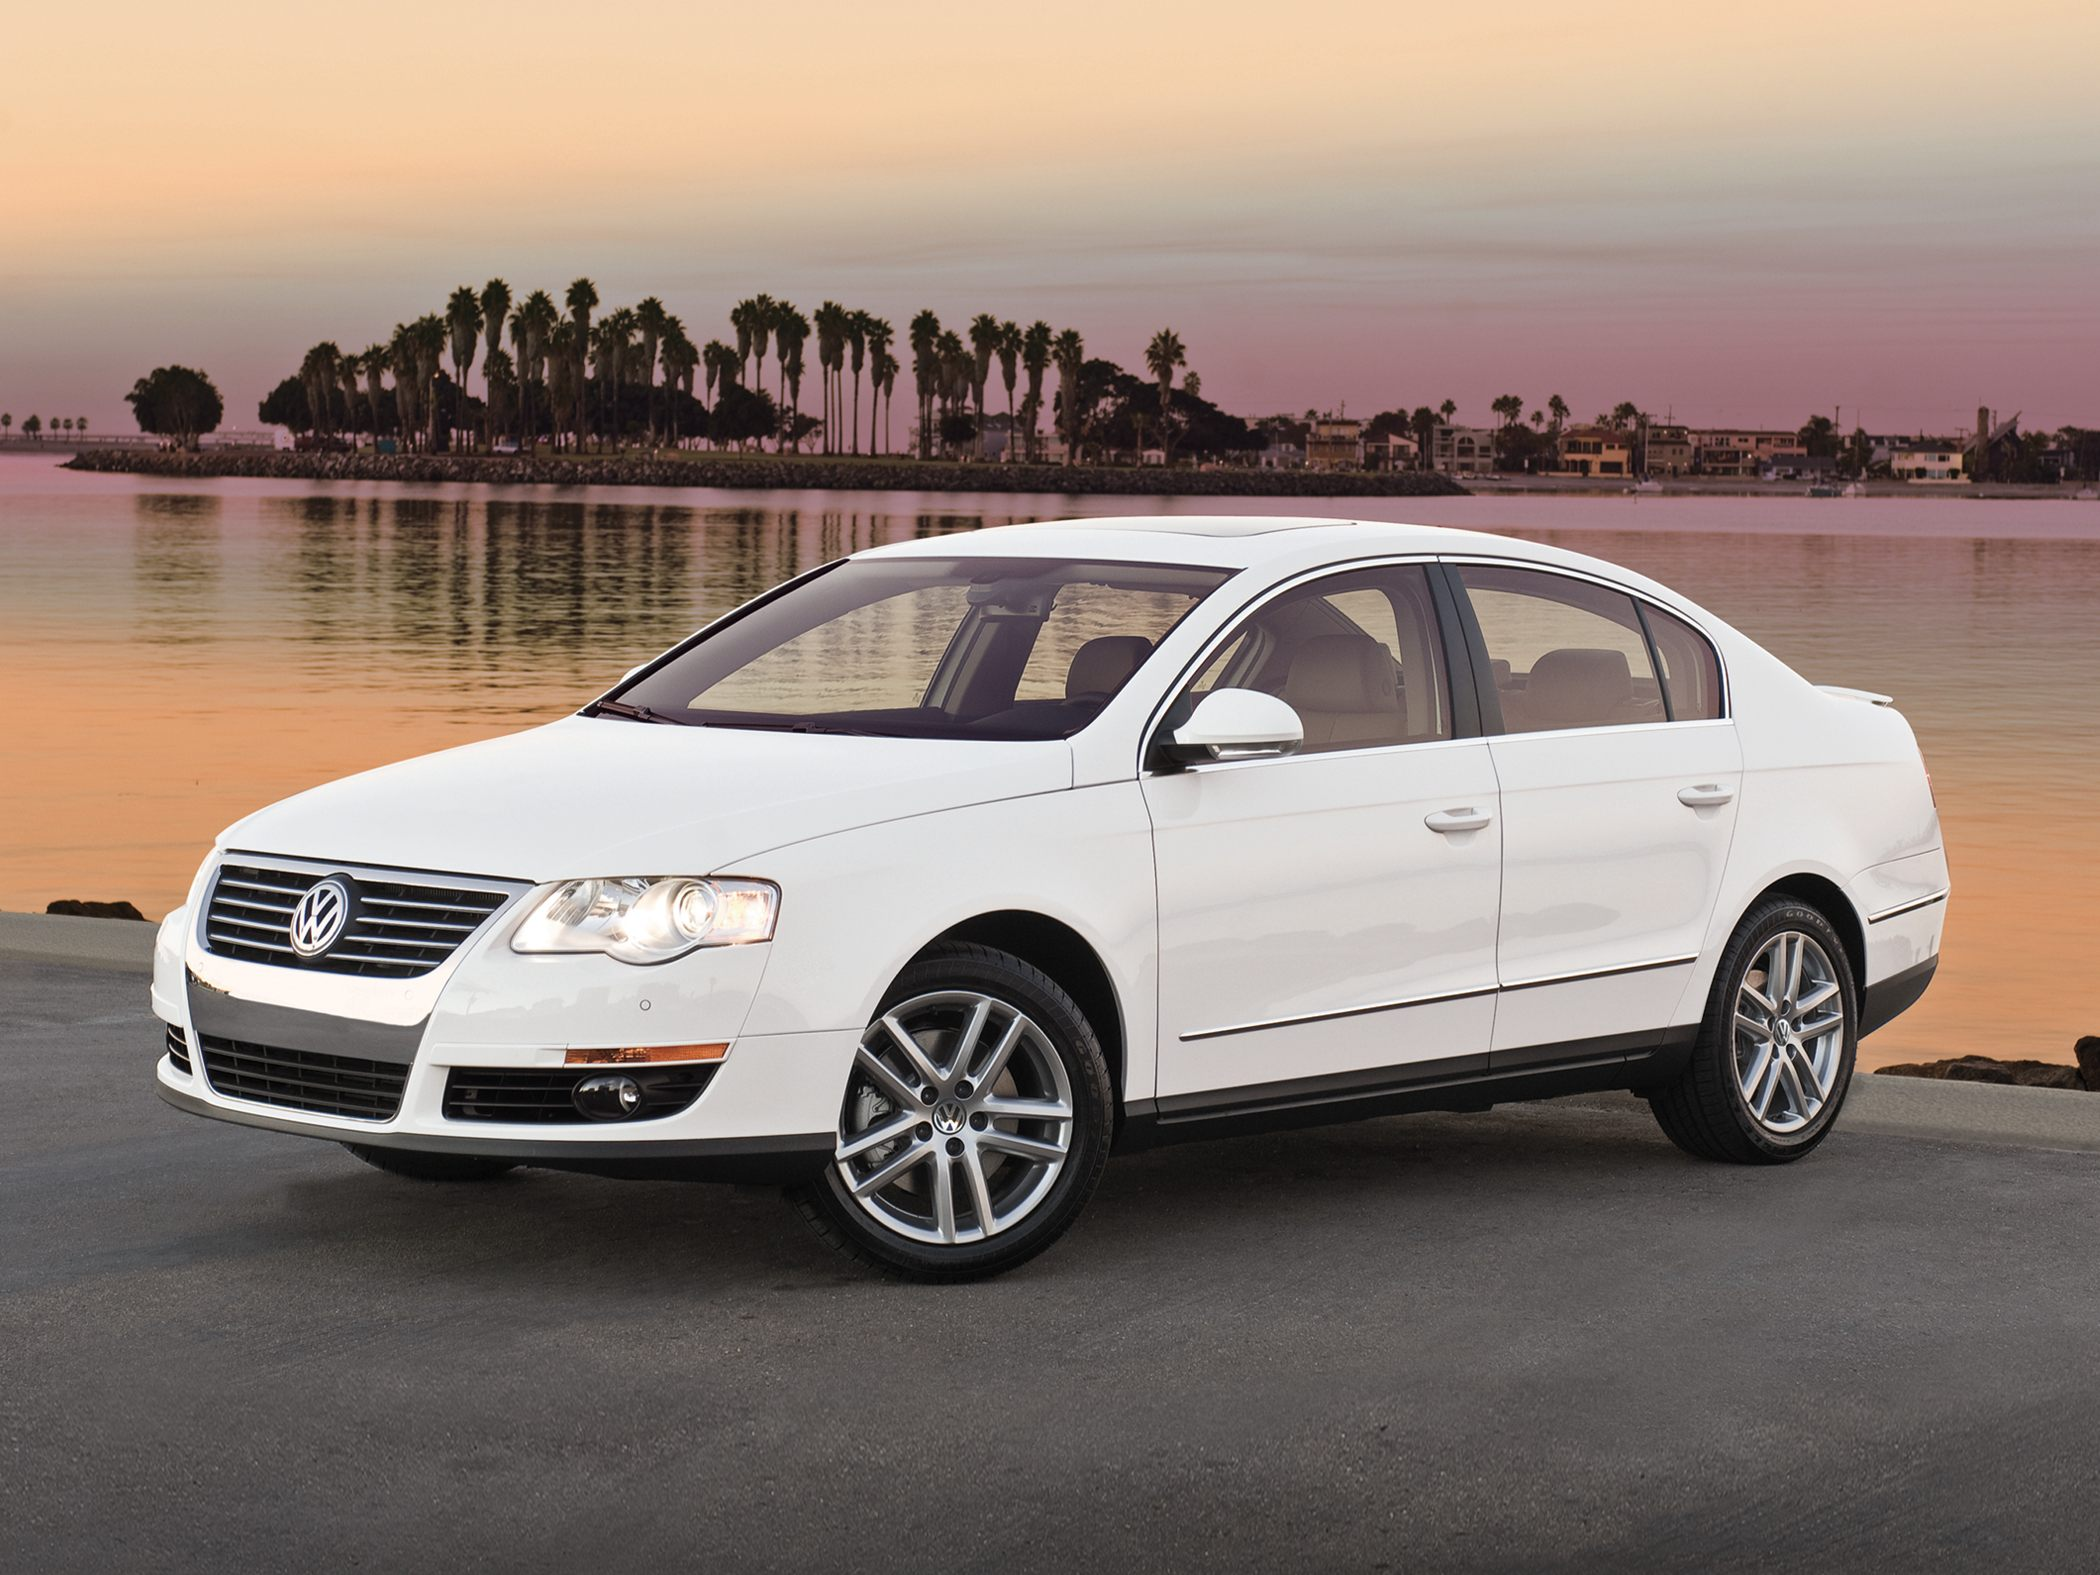 Volkswagen Passat 2010 photo - 1